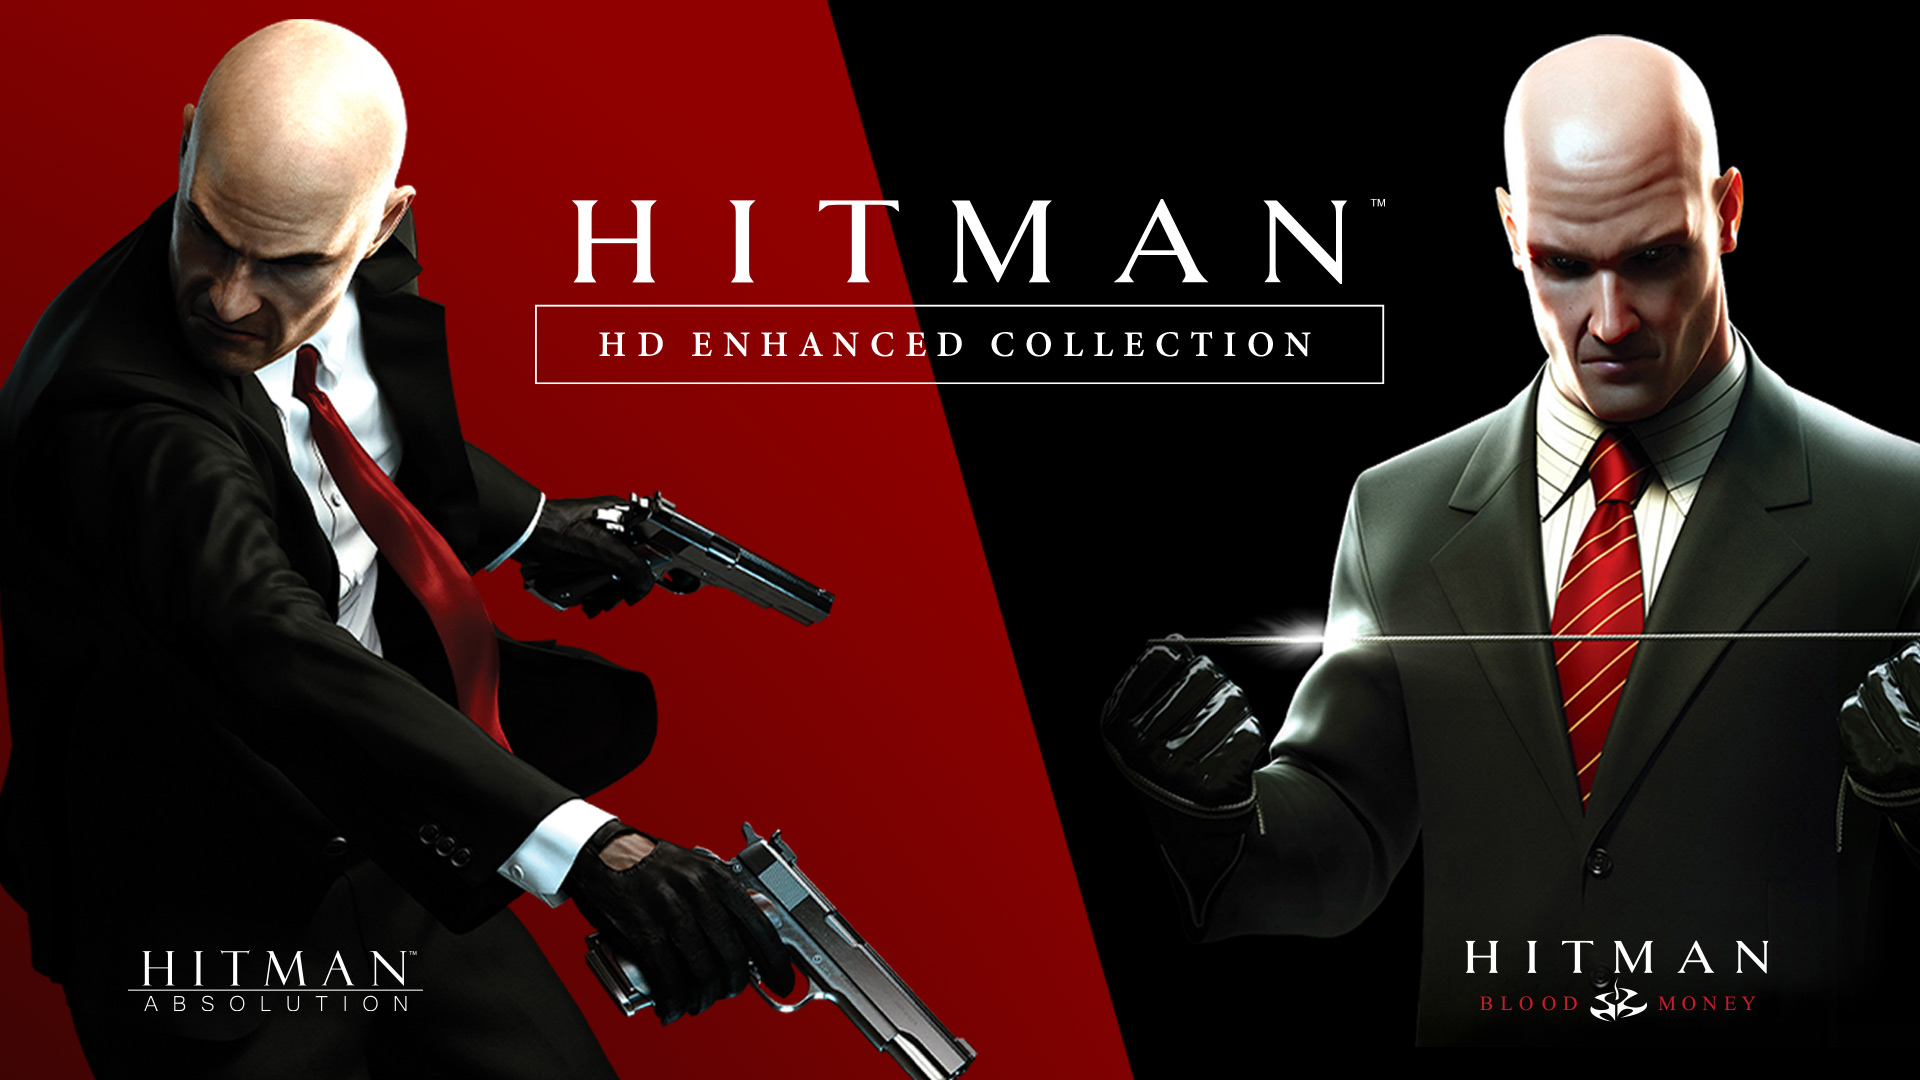 Hitman HD Enhanced Collection logo, showing cover art for both Hitman Blood Money on the left and Hitman Absolution on the right.